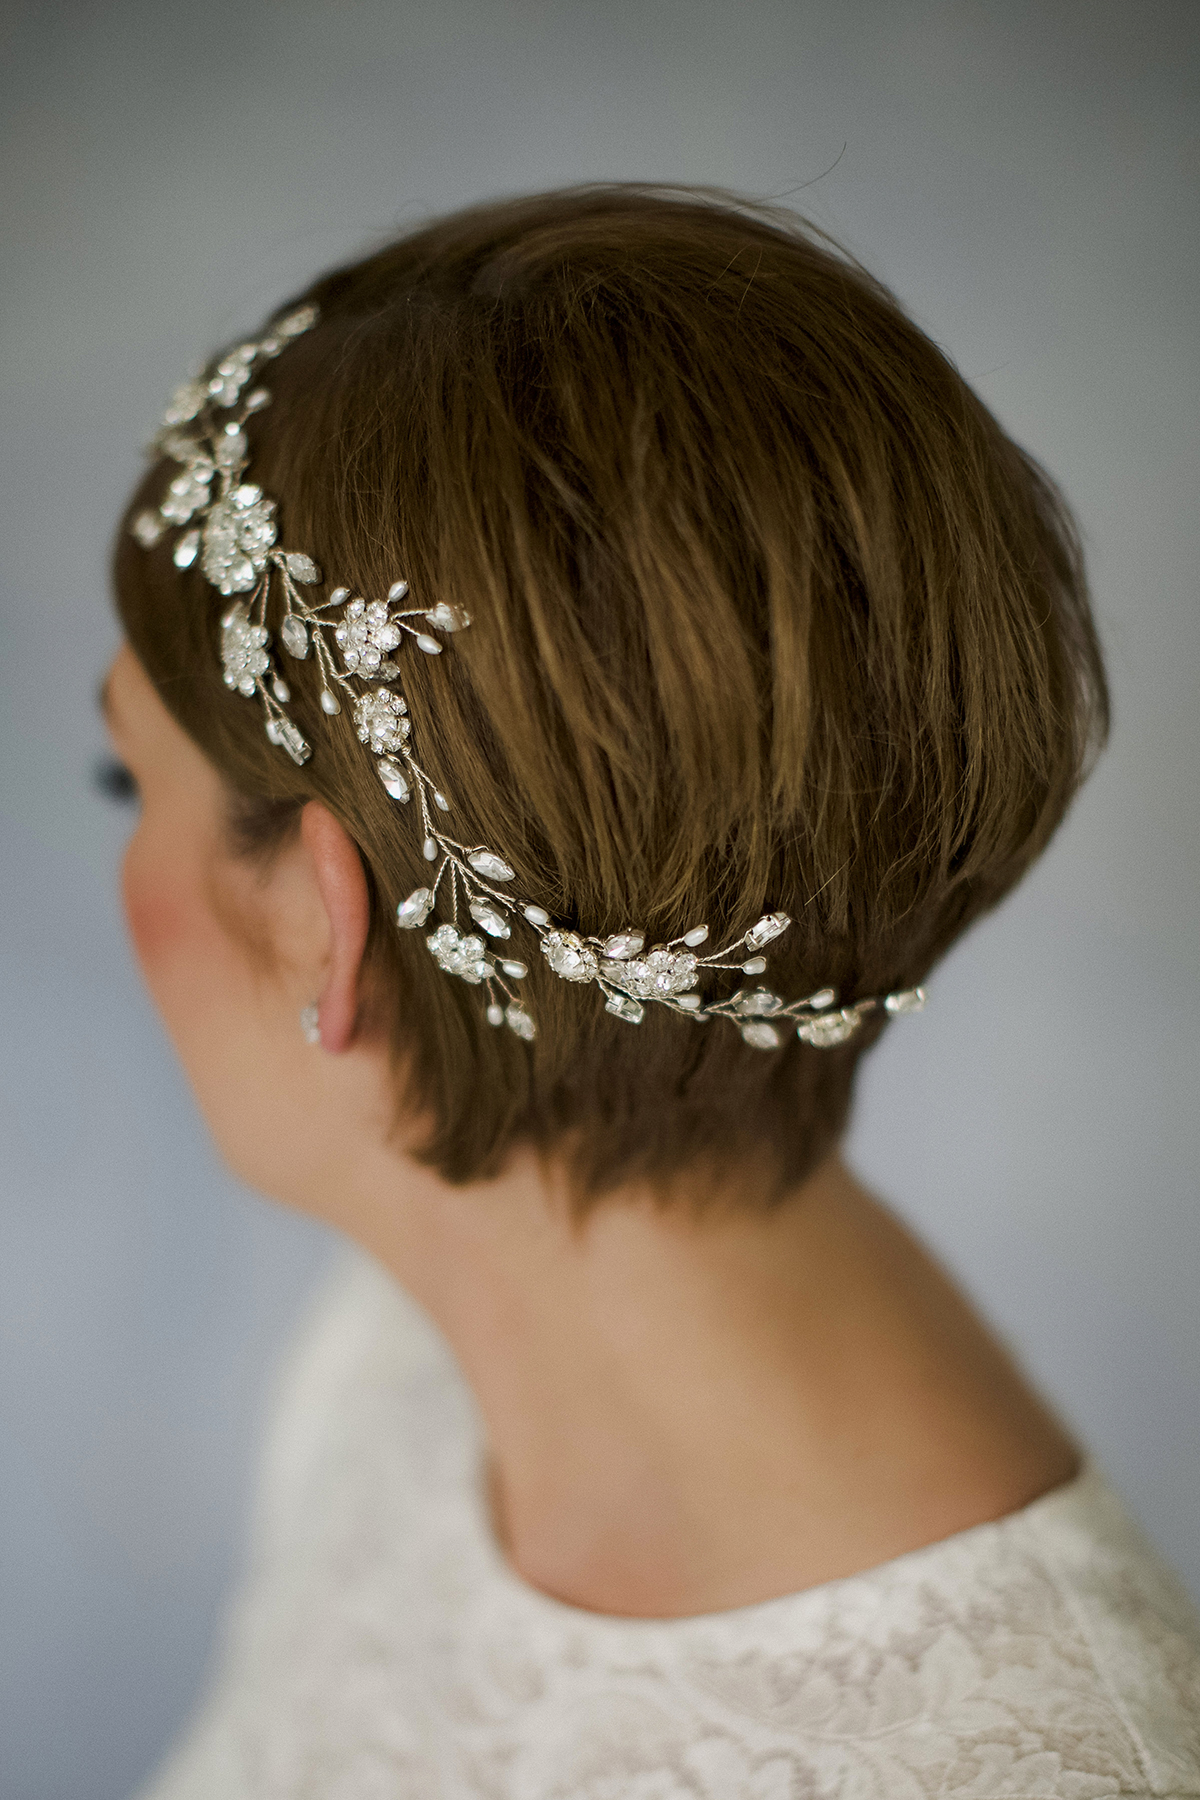 Accessory For Hair: How To Style Wedding Hair Accessories With Short Hair